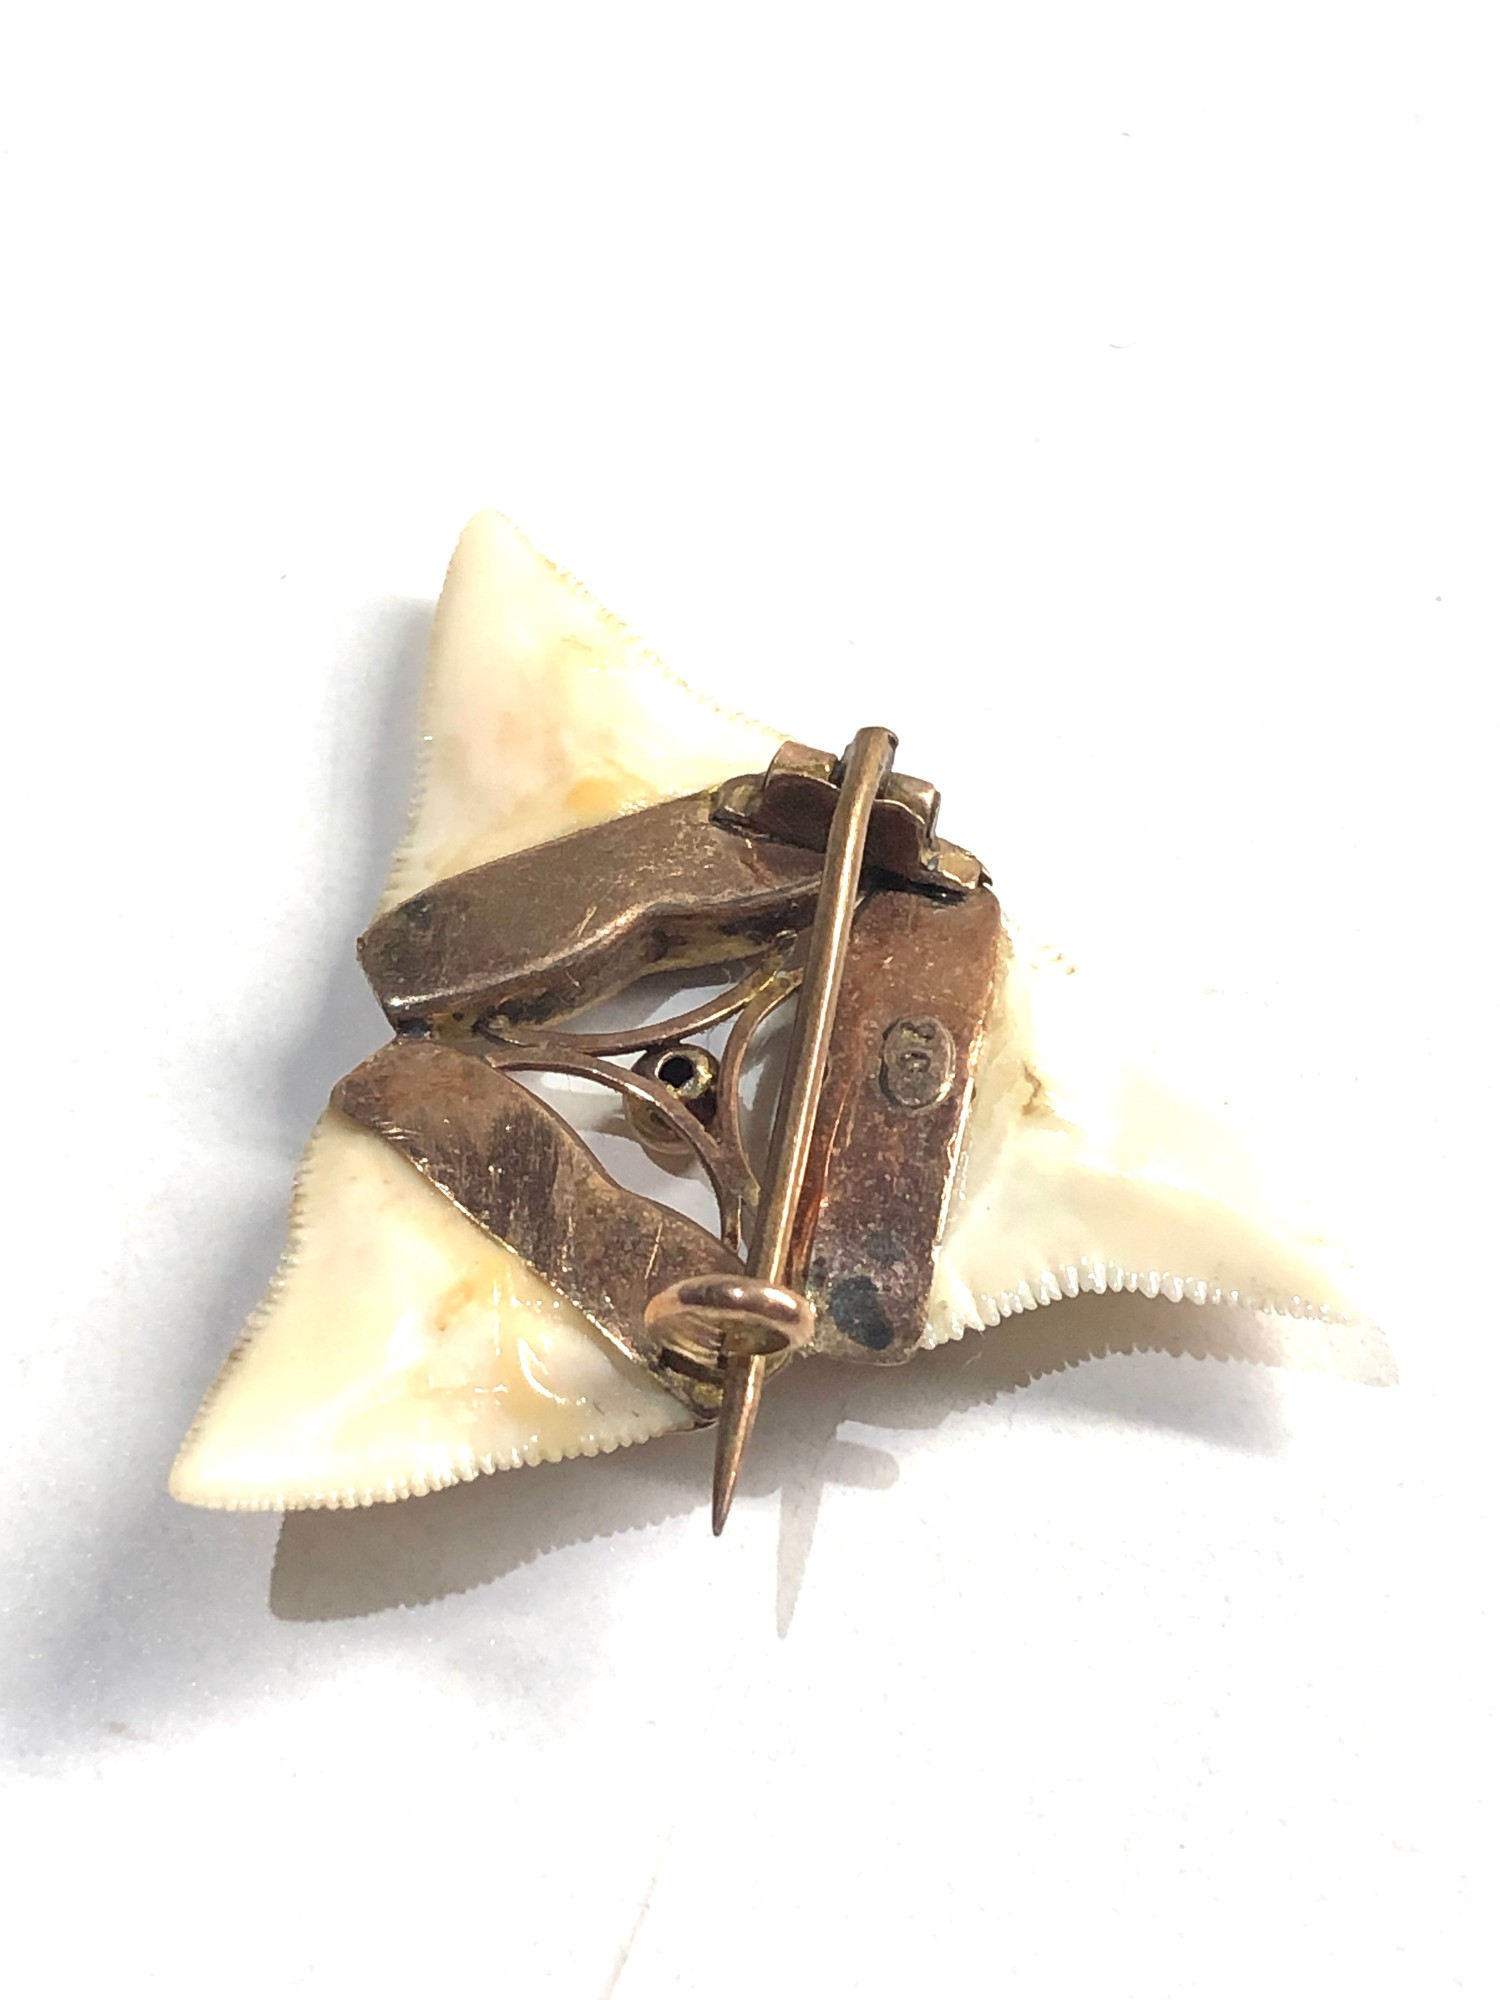 9ct Gold ornate detail shark tooth brooch - Image 3 of 3